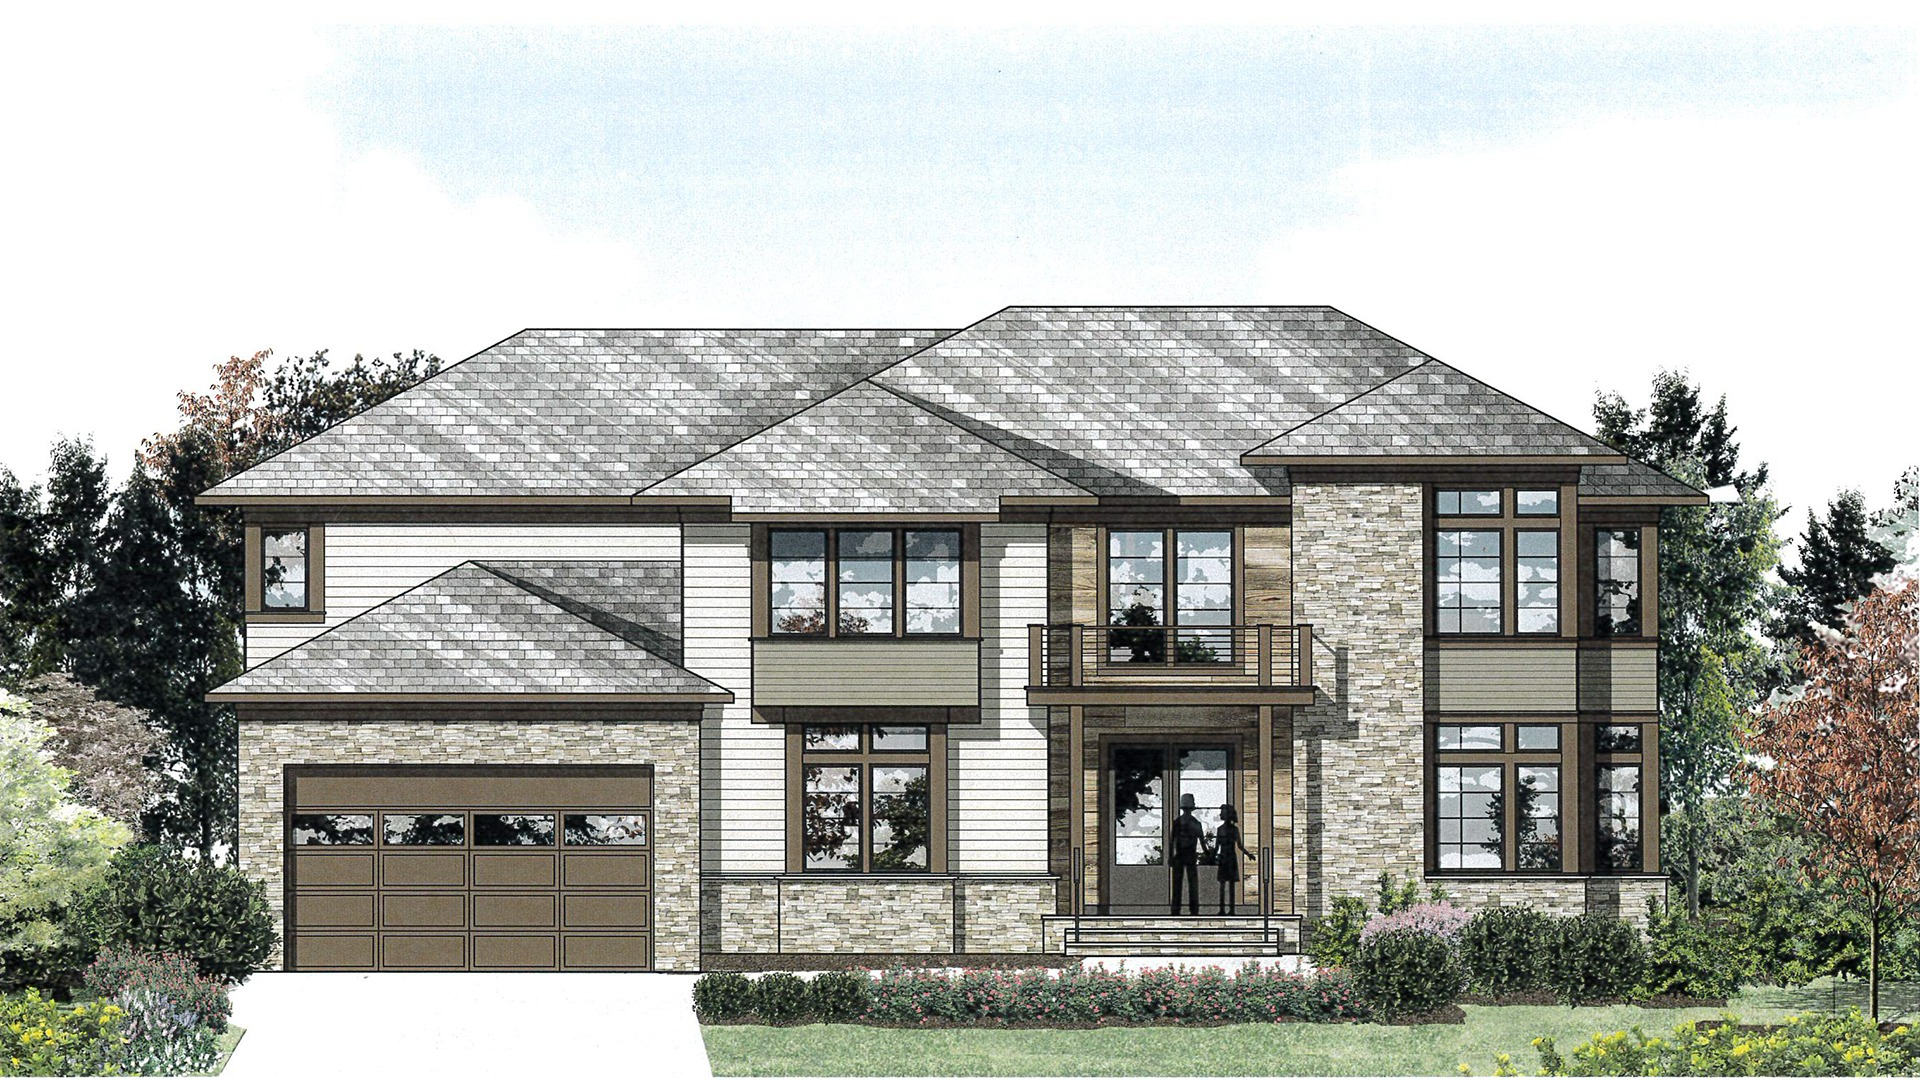 A concept exterior we did on our Winthrop in the Parkline Series style.